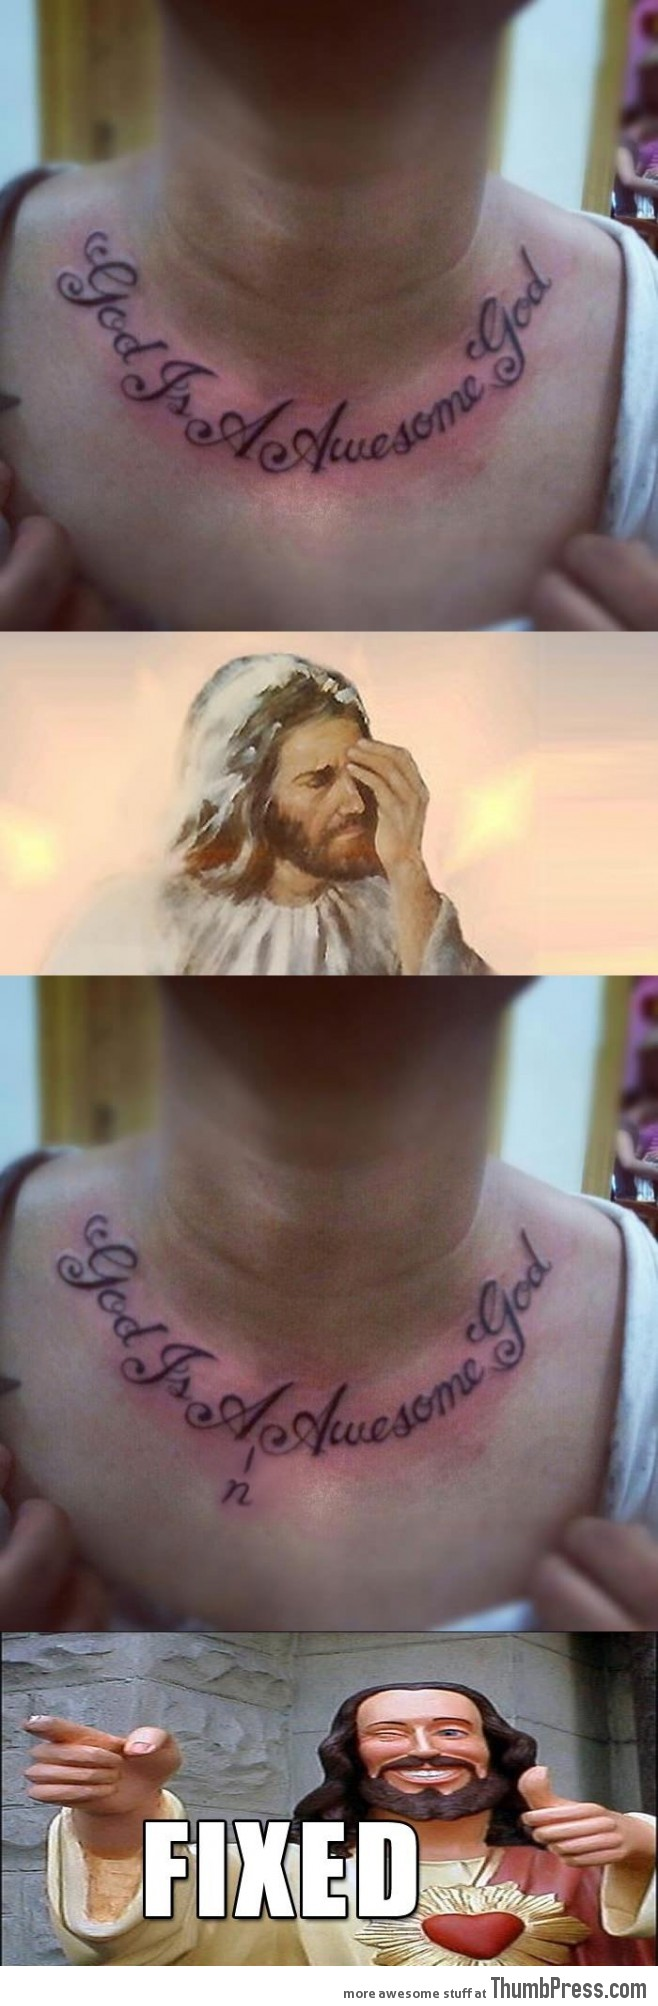 I prayed for a tattoo removal